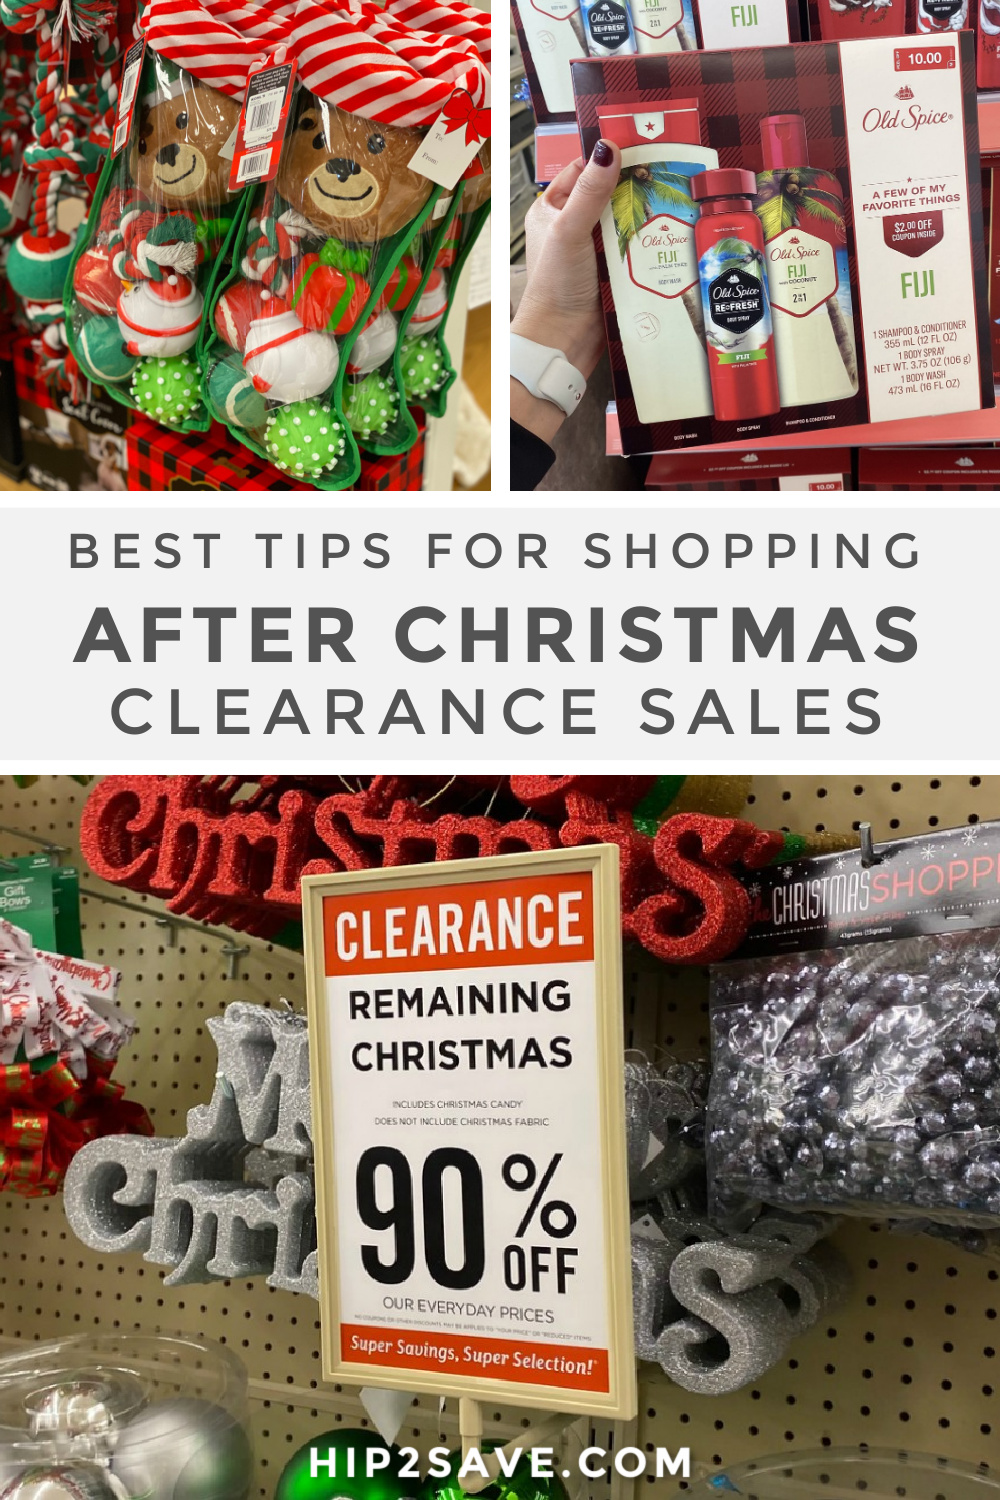 When Will Walgreens Christmas Clearance Be 75% Off January 2021 How To Get 90 Off During After Christmas Clearance Sales Hip2save